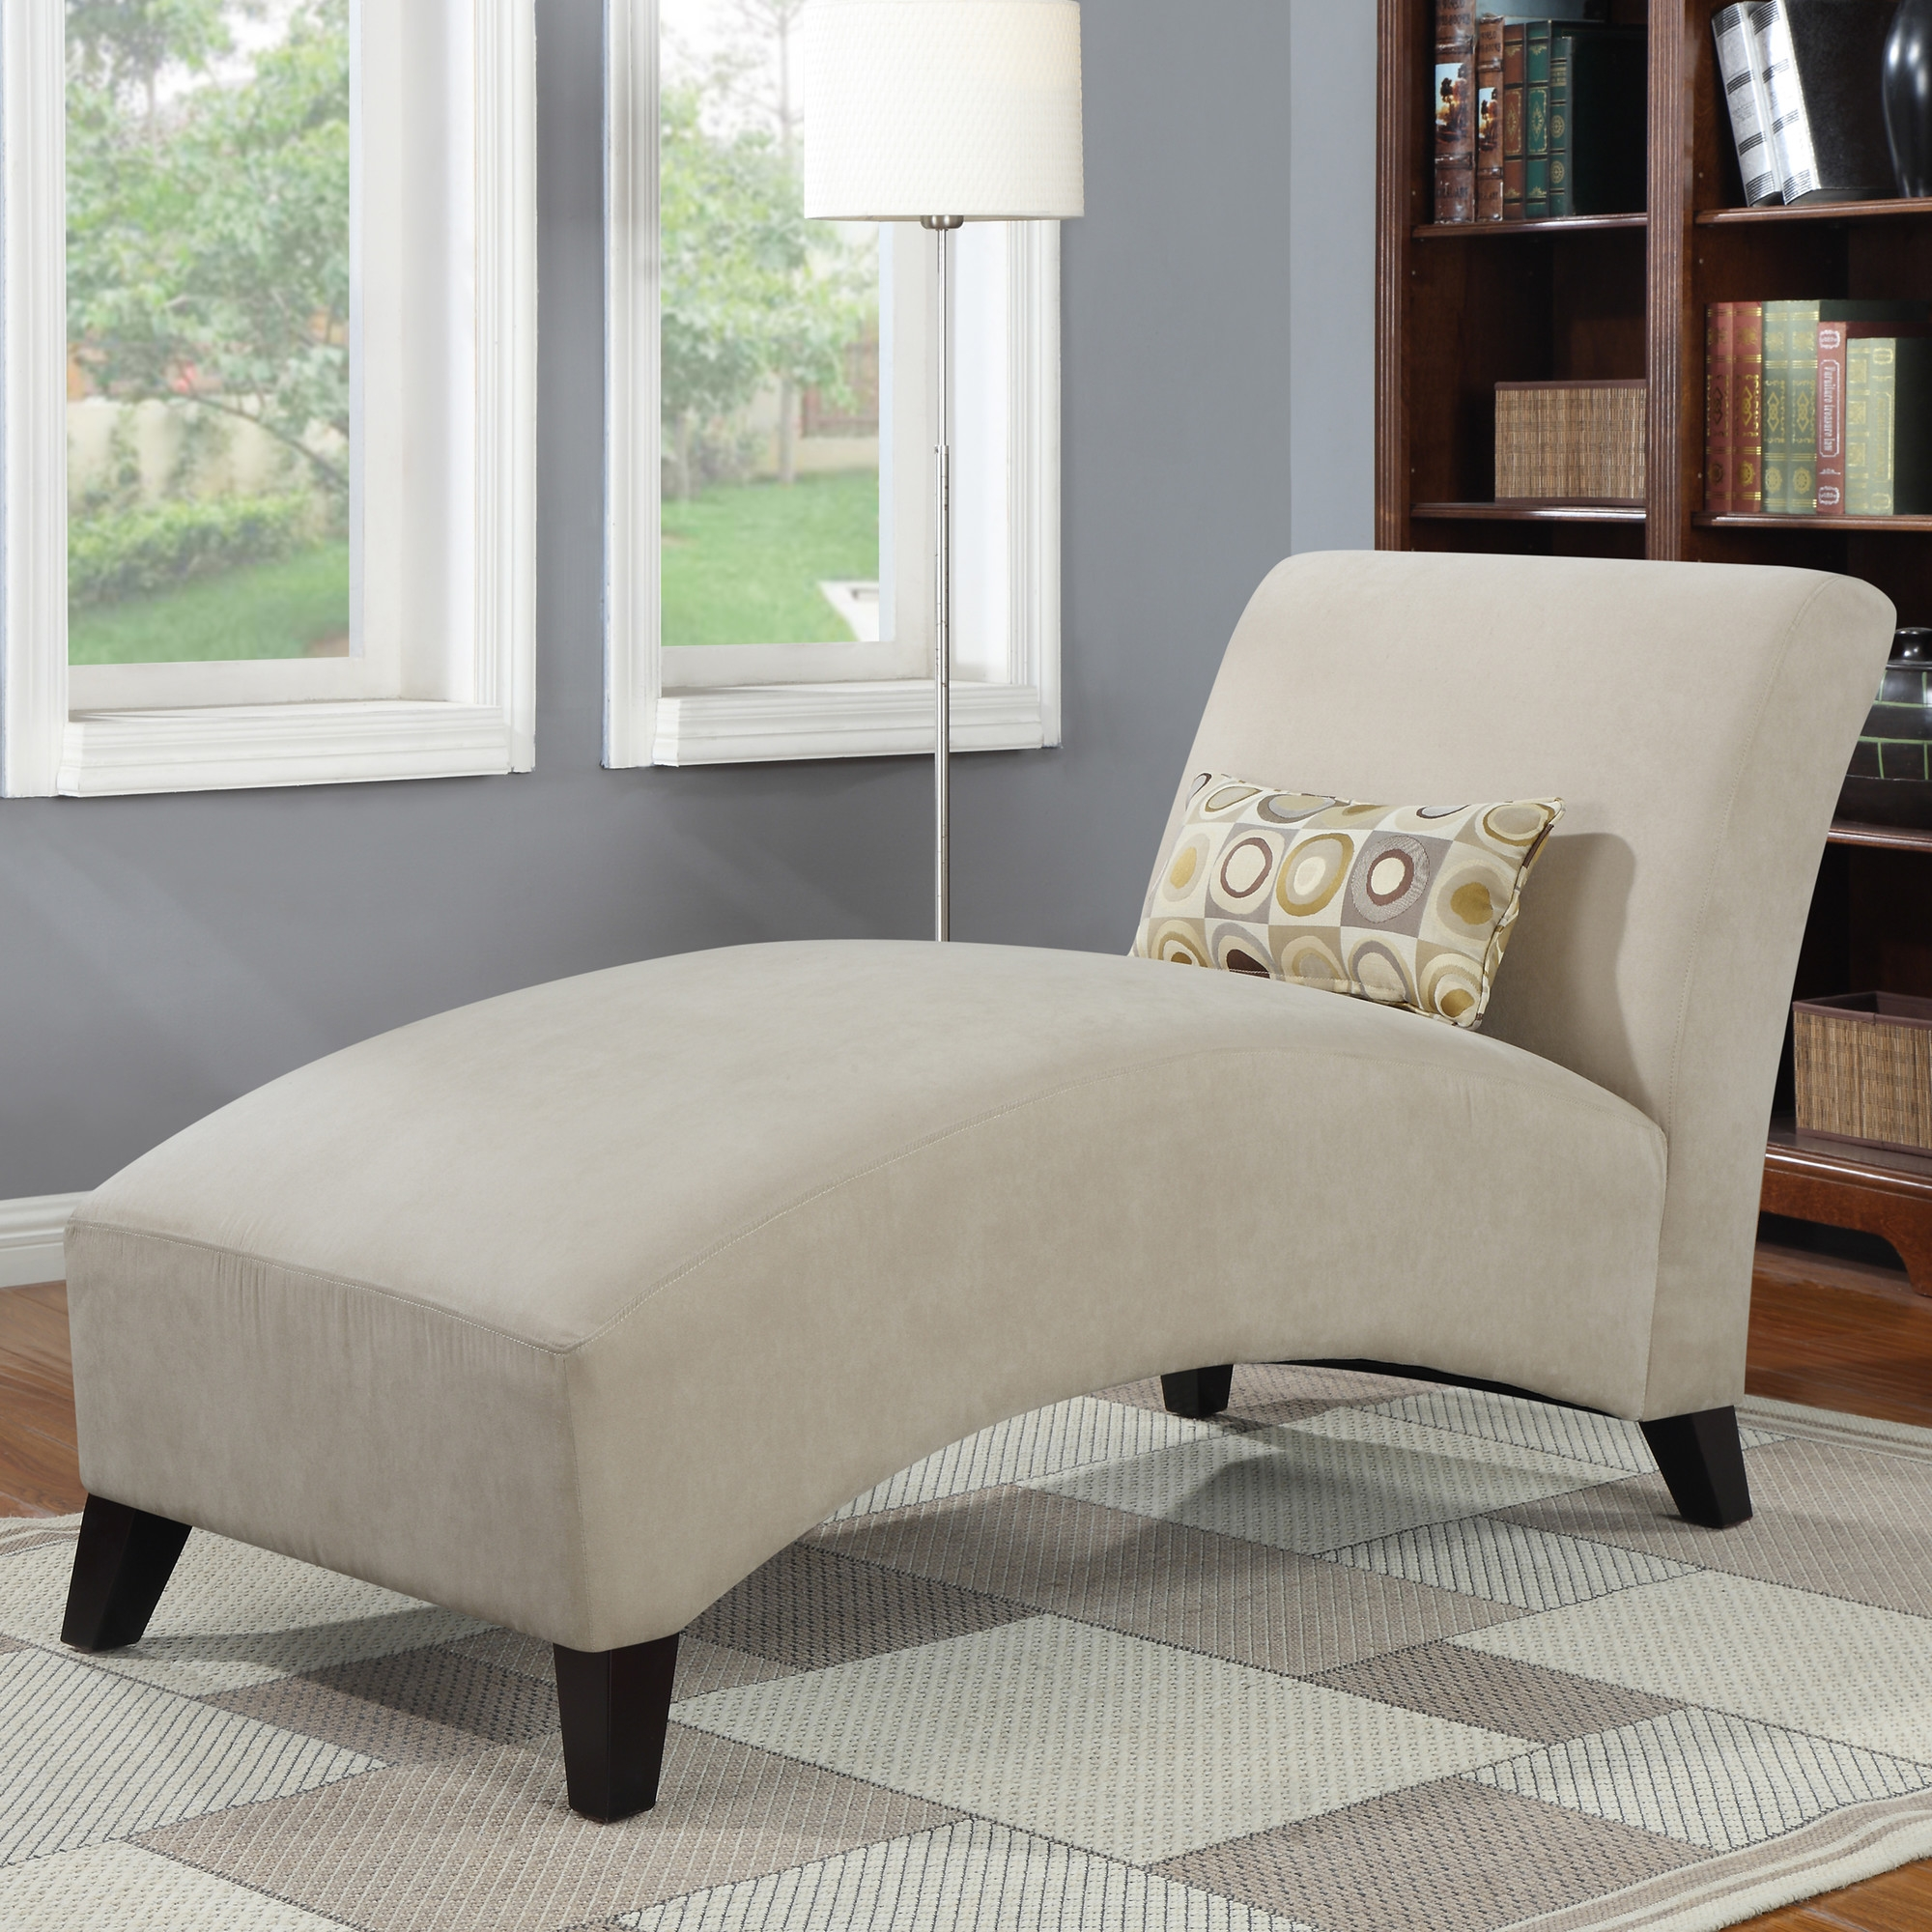 Furniture Microfiber Chaise Lounge For Comfortable Sofa Design With Regard To Bedroom Sofa Chairs (Image 10 of 15)